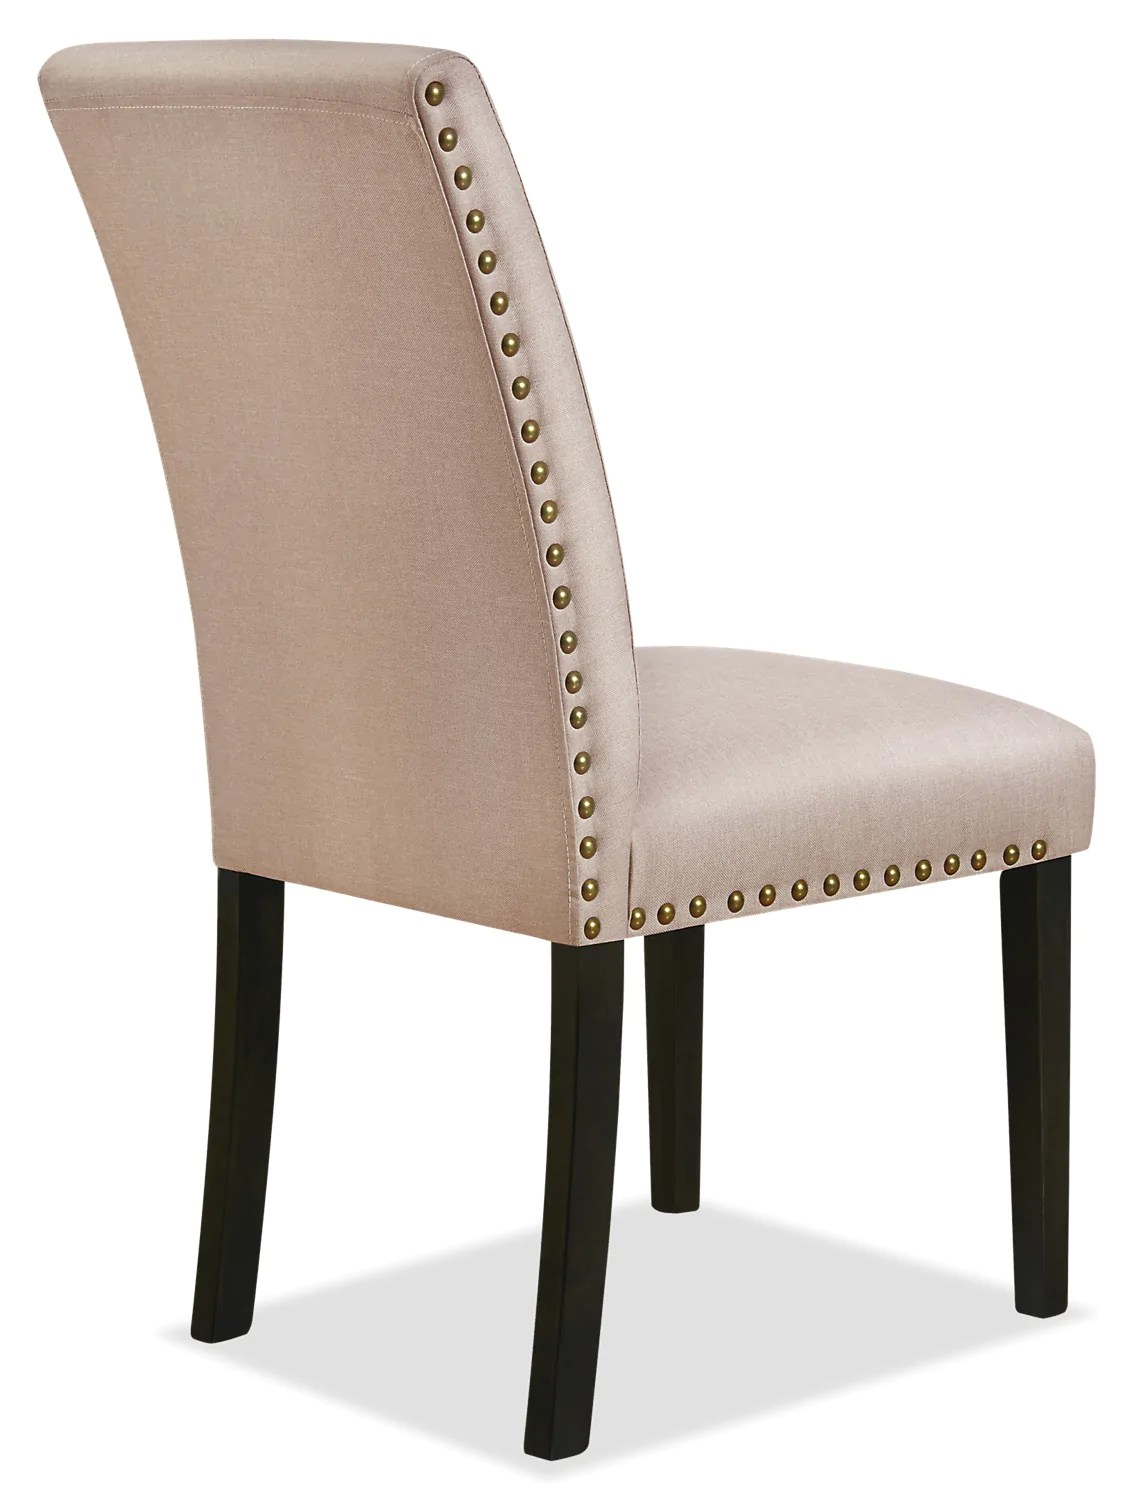 Studded Dining Chairs York Studded Dining Chair Taupe